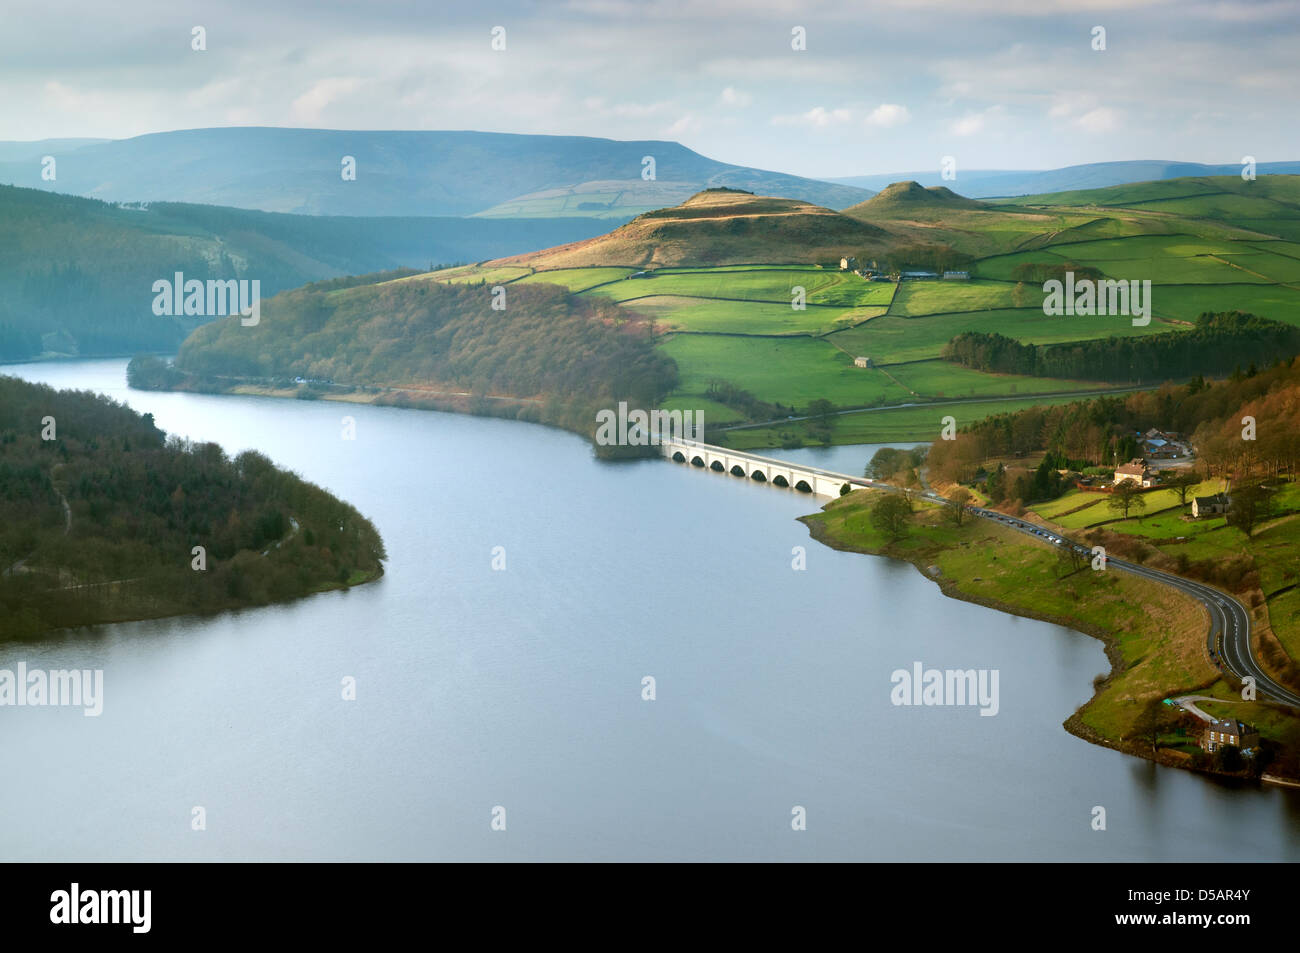 Elevated view of Ladybower Reservoir in soft winter light, The Peak District National Park. - Stock Image